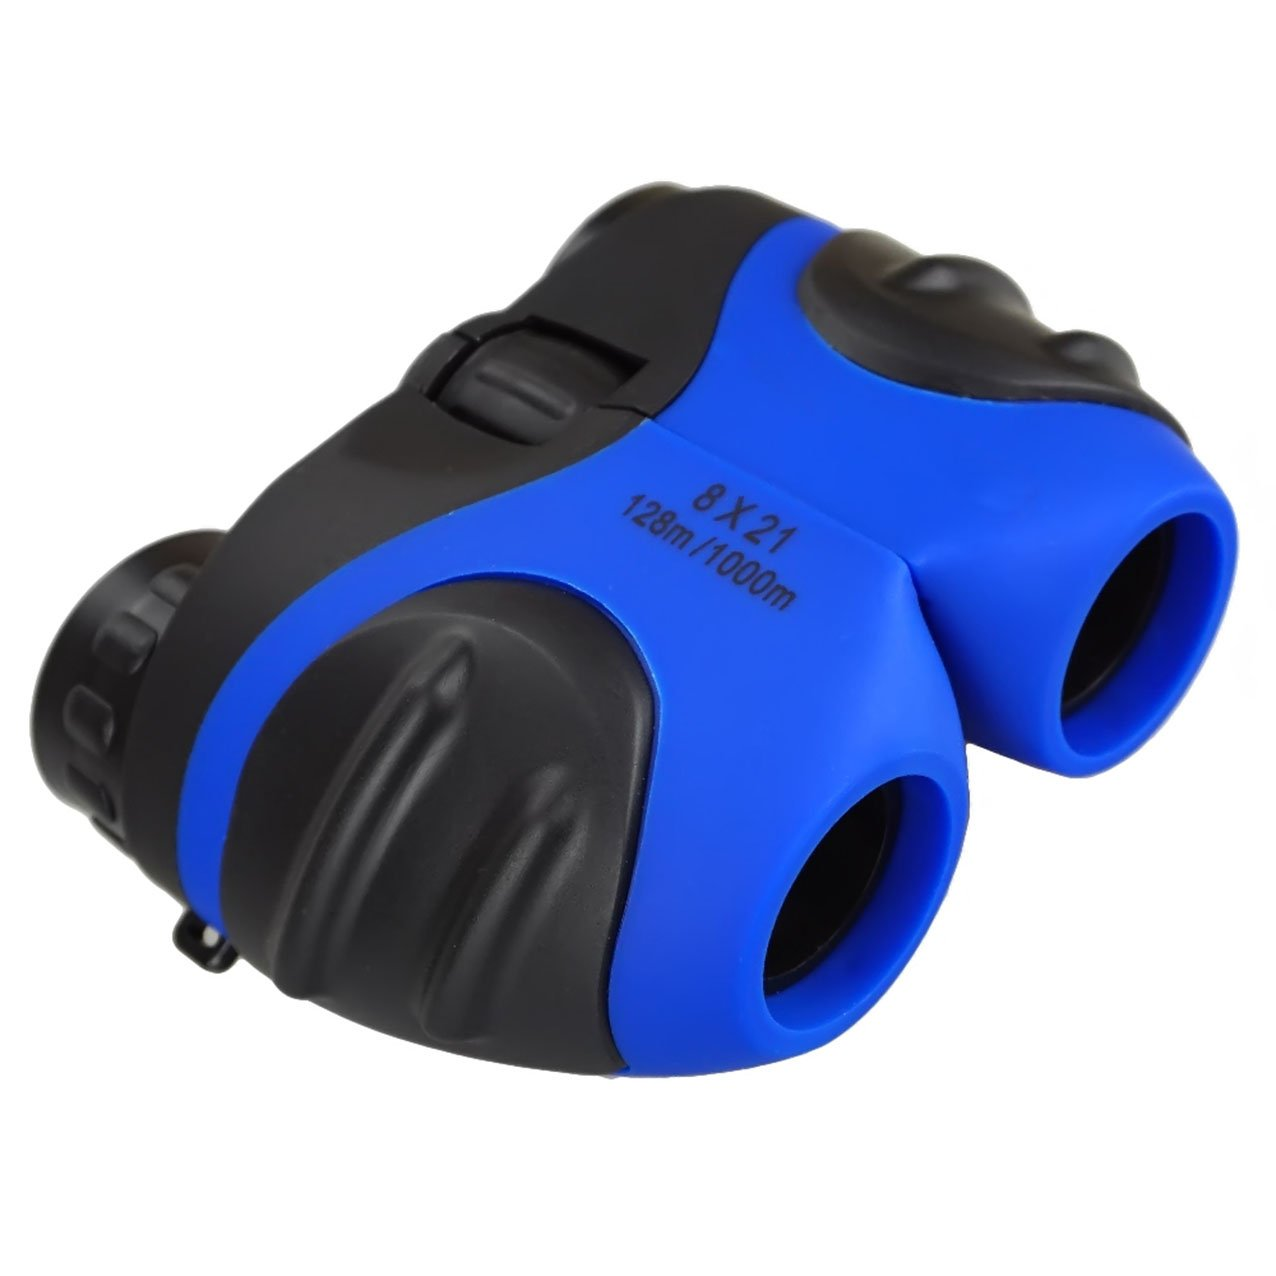 Darli Toys for 4-5 Year Old Boys, Compact Binoculars for Bird Watching Toys for 6-12 Year Old Boys Boys Gifts Age 3-12 Toys Boys Age 3-12 Toys for 3-12 Year Old Boys Blue DLZH02